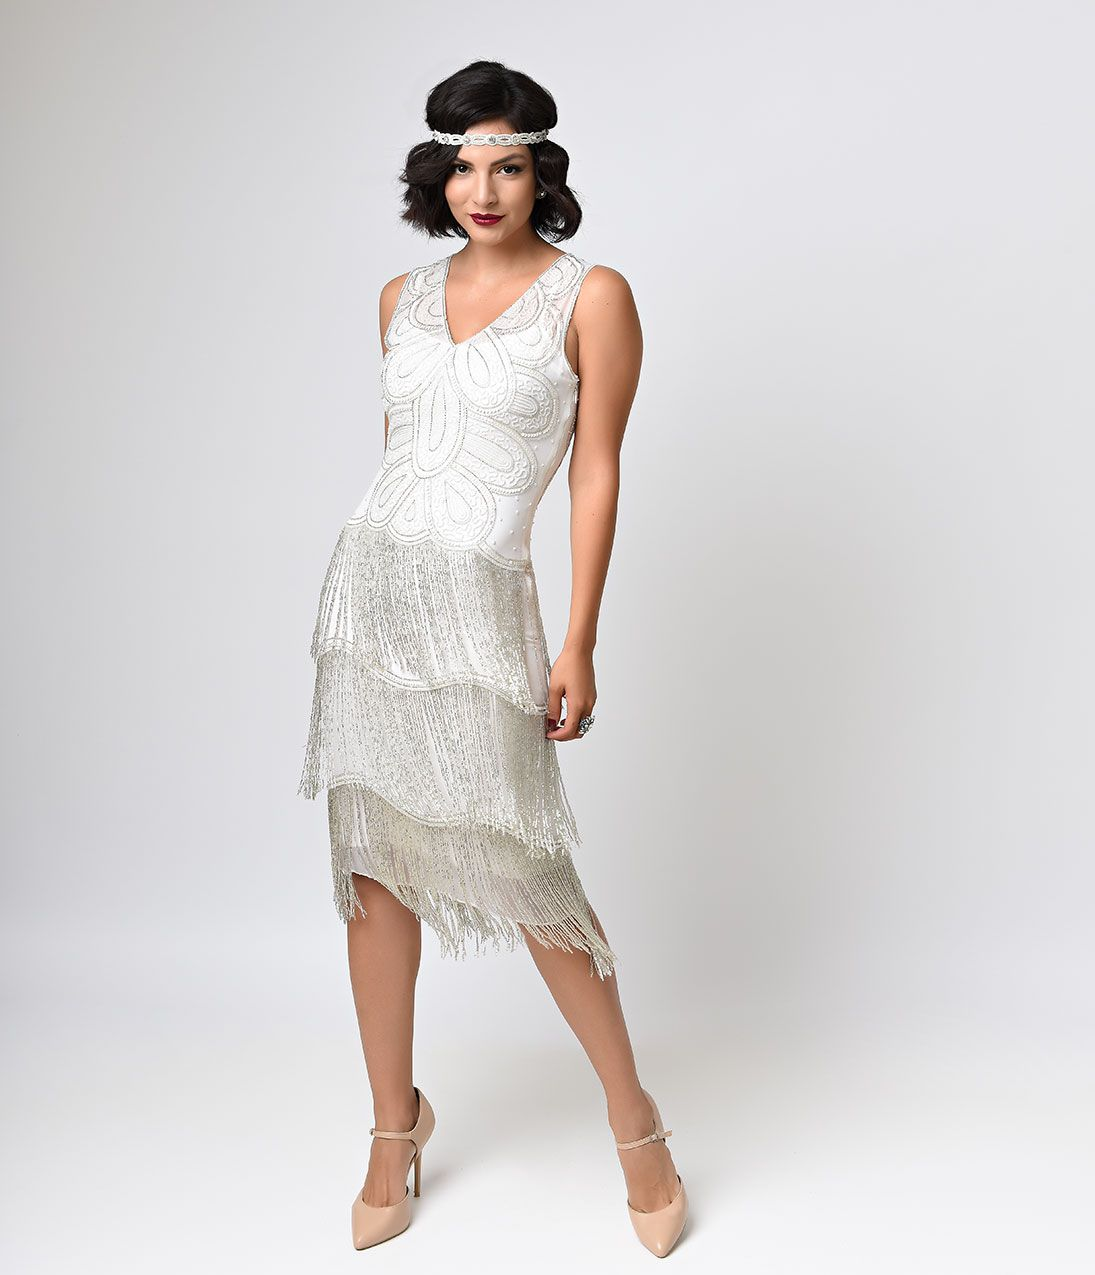 Vintage inspired wedding dresses 1920s 1960s flapper for Wedding dresses in the 1920s